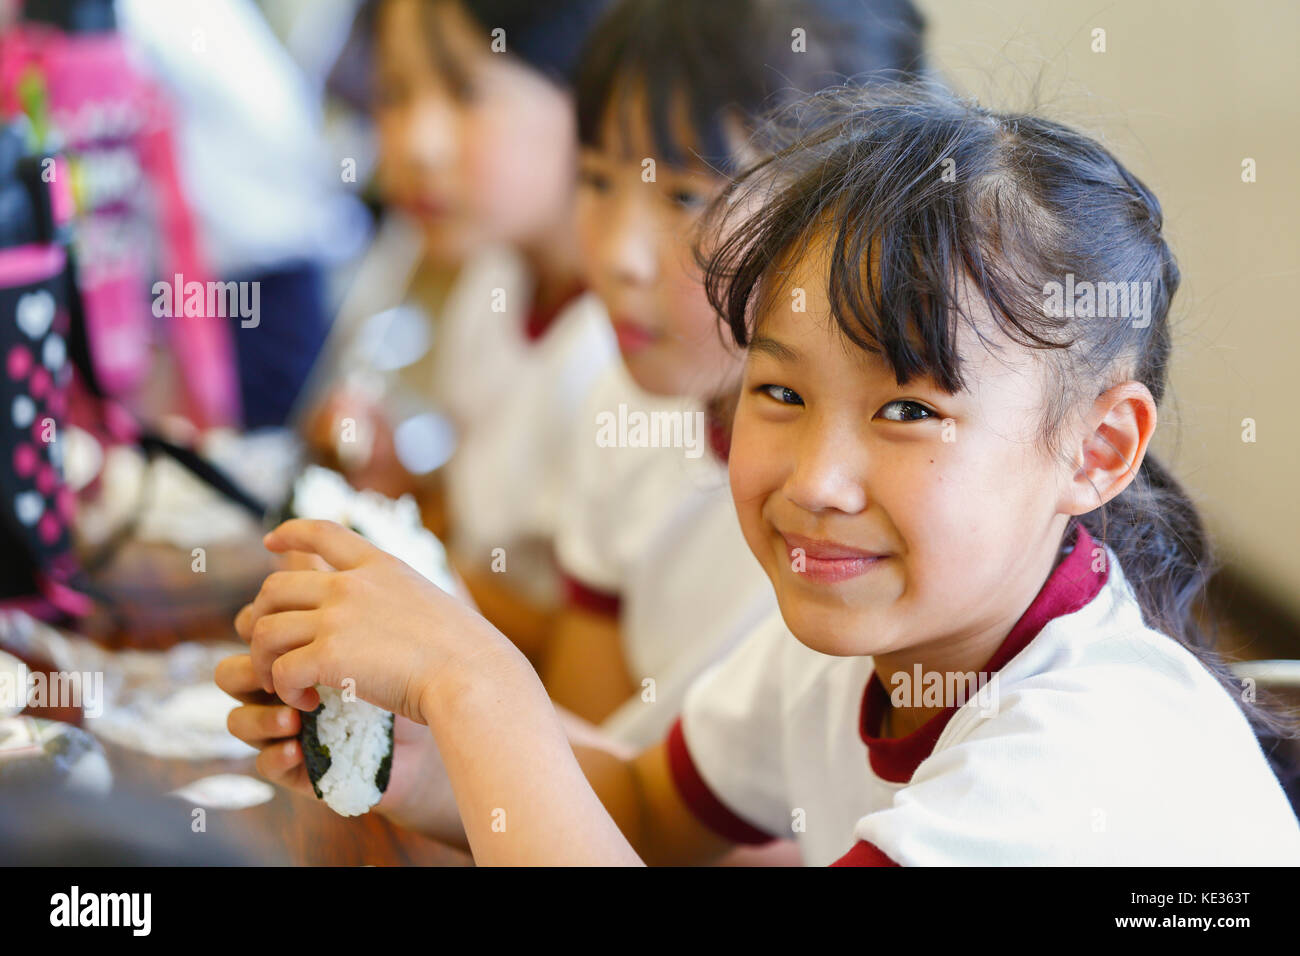 Japanese elementary school kids eating in the classroom - Stock Image